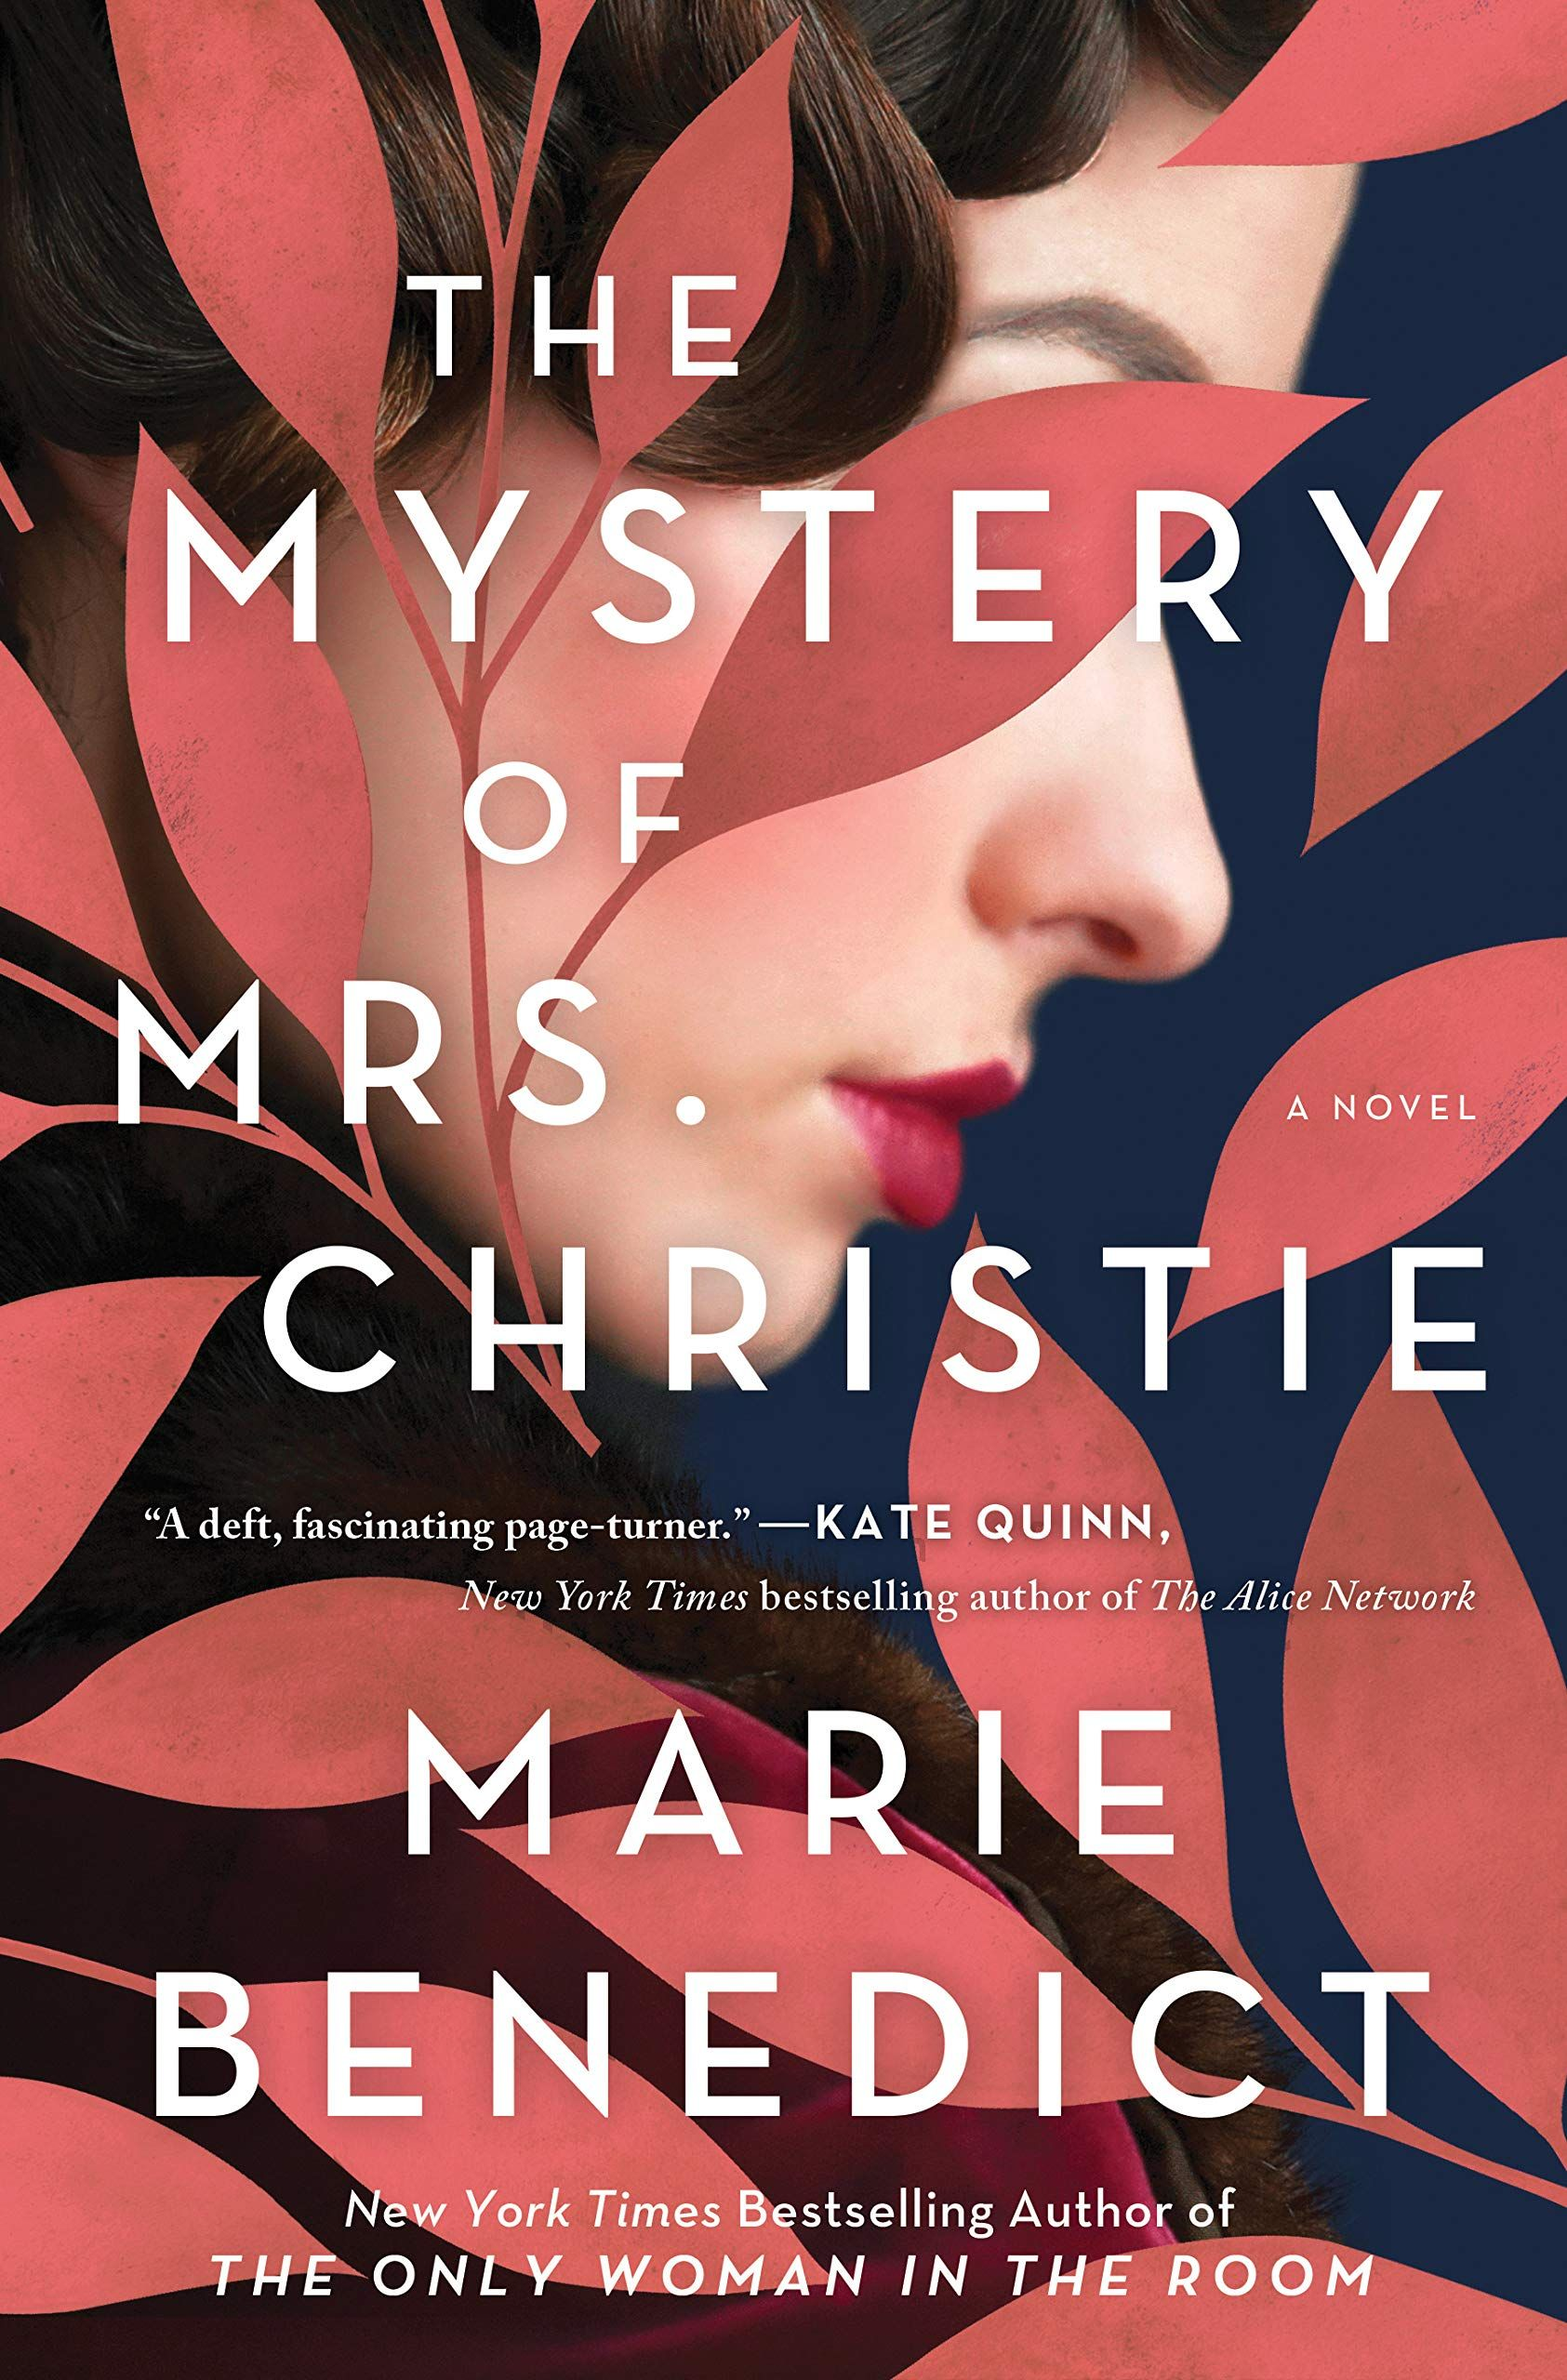 Pdf The Mystery Of Mrs Christie By Marie Benedict In 2020 Book Release Upcoming Books Christy